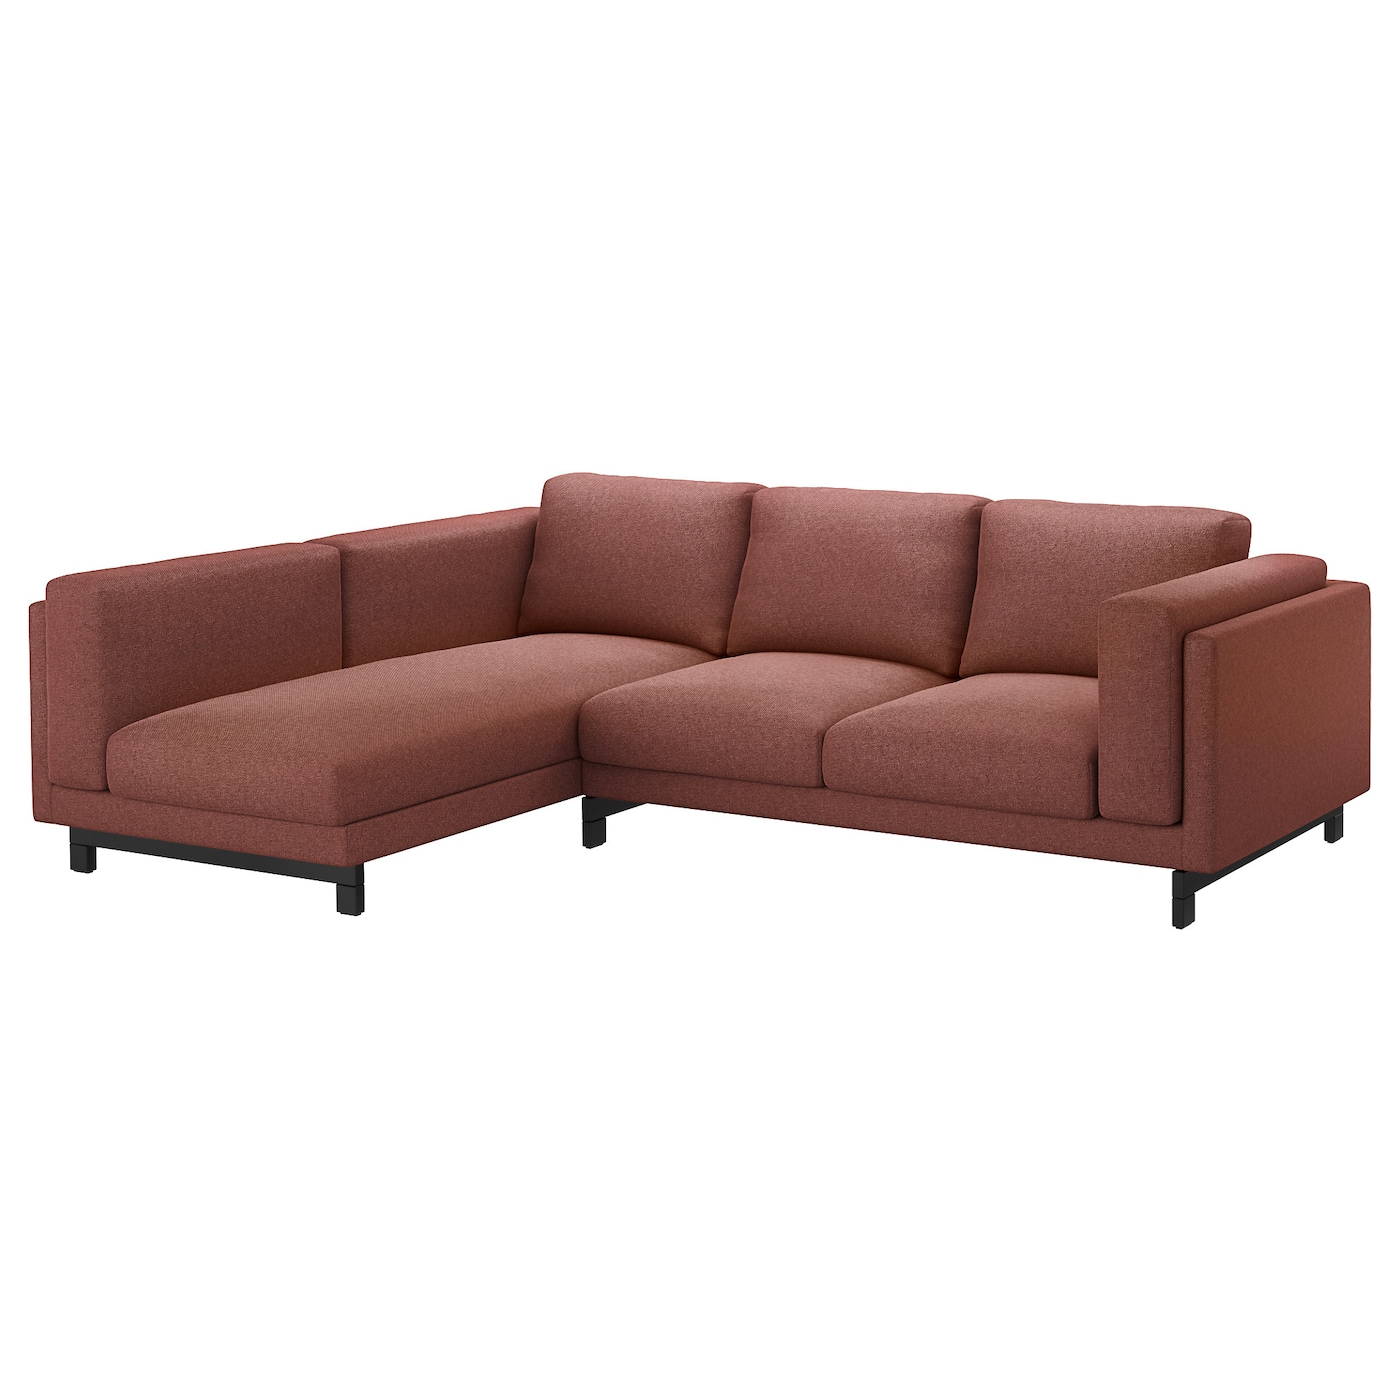 Nockeby two seat sofa w chaise longue left tallmyra rust for Oferta sofa cama chaise longue